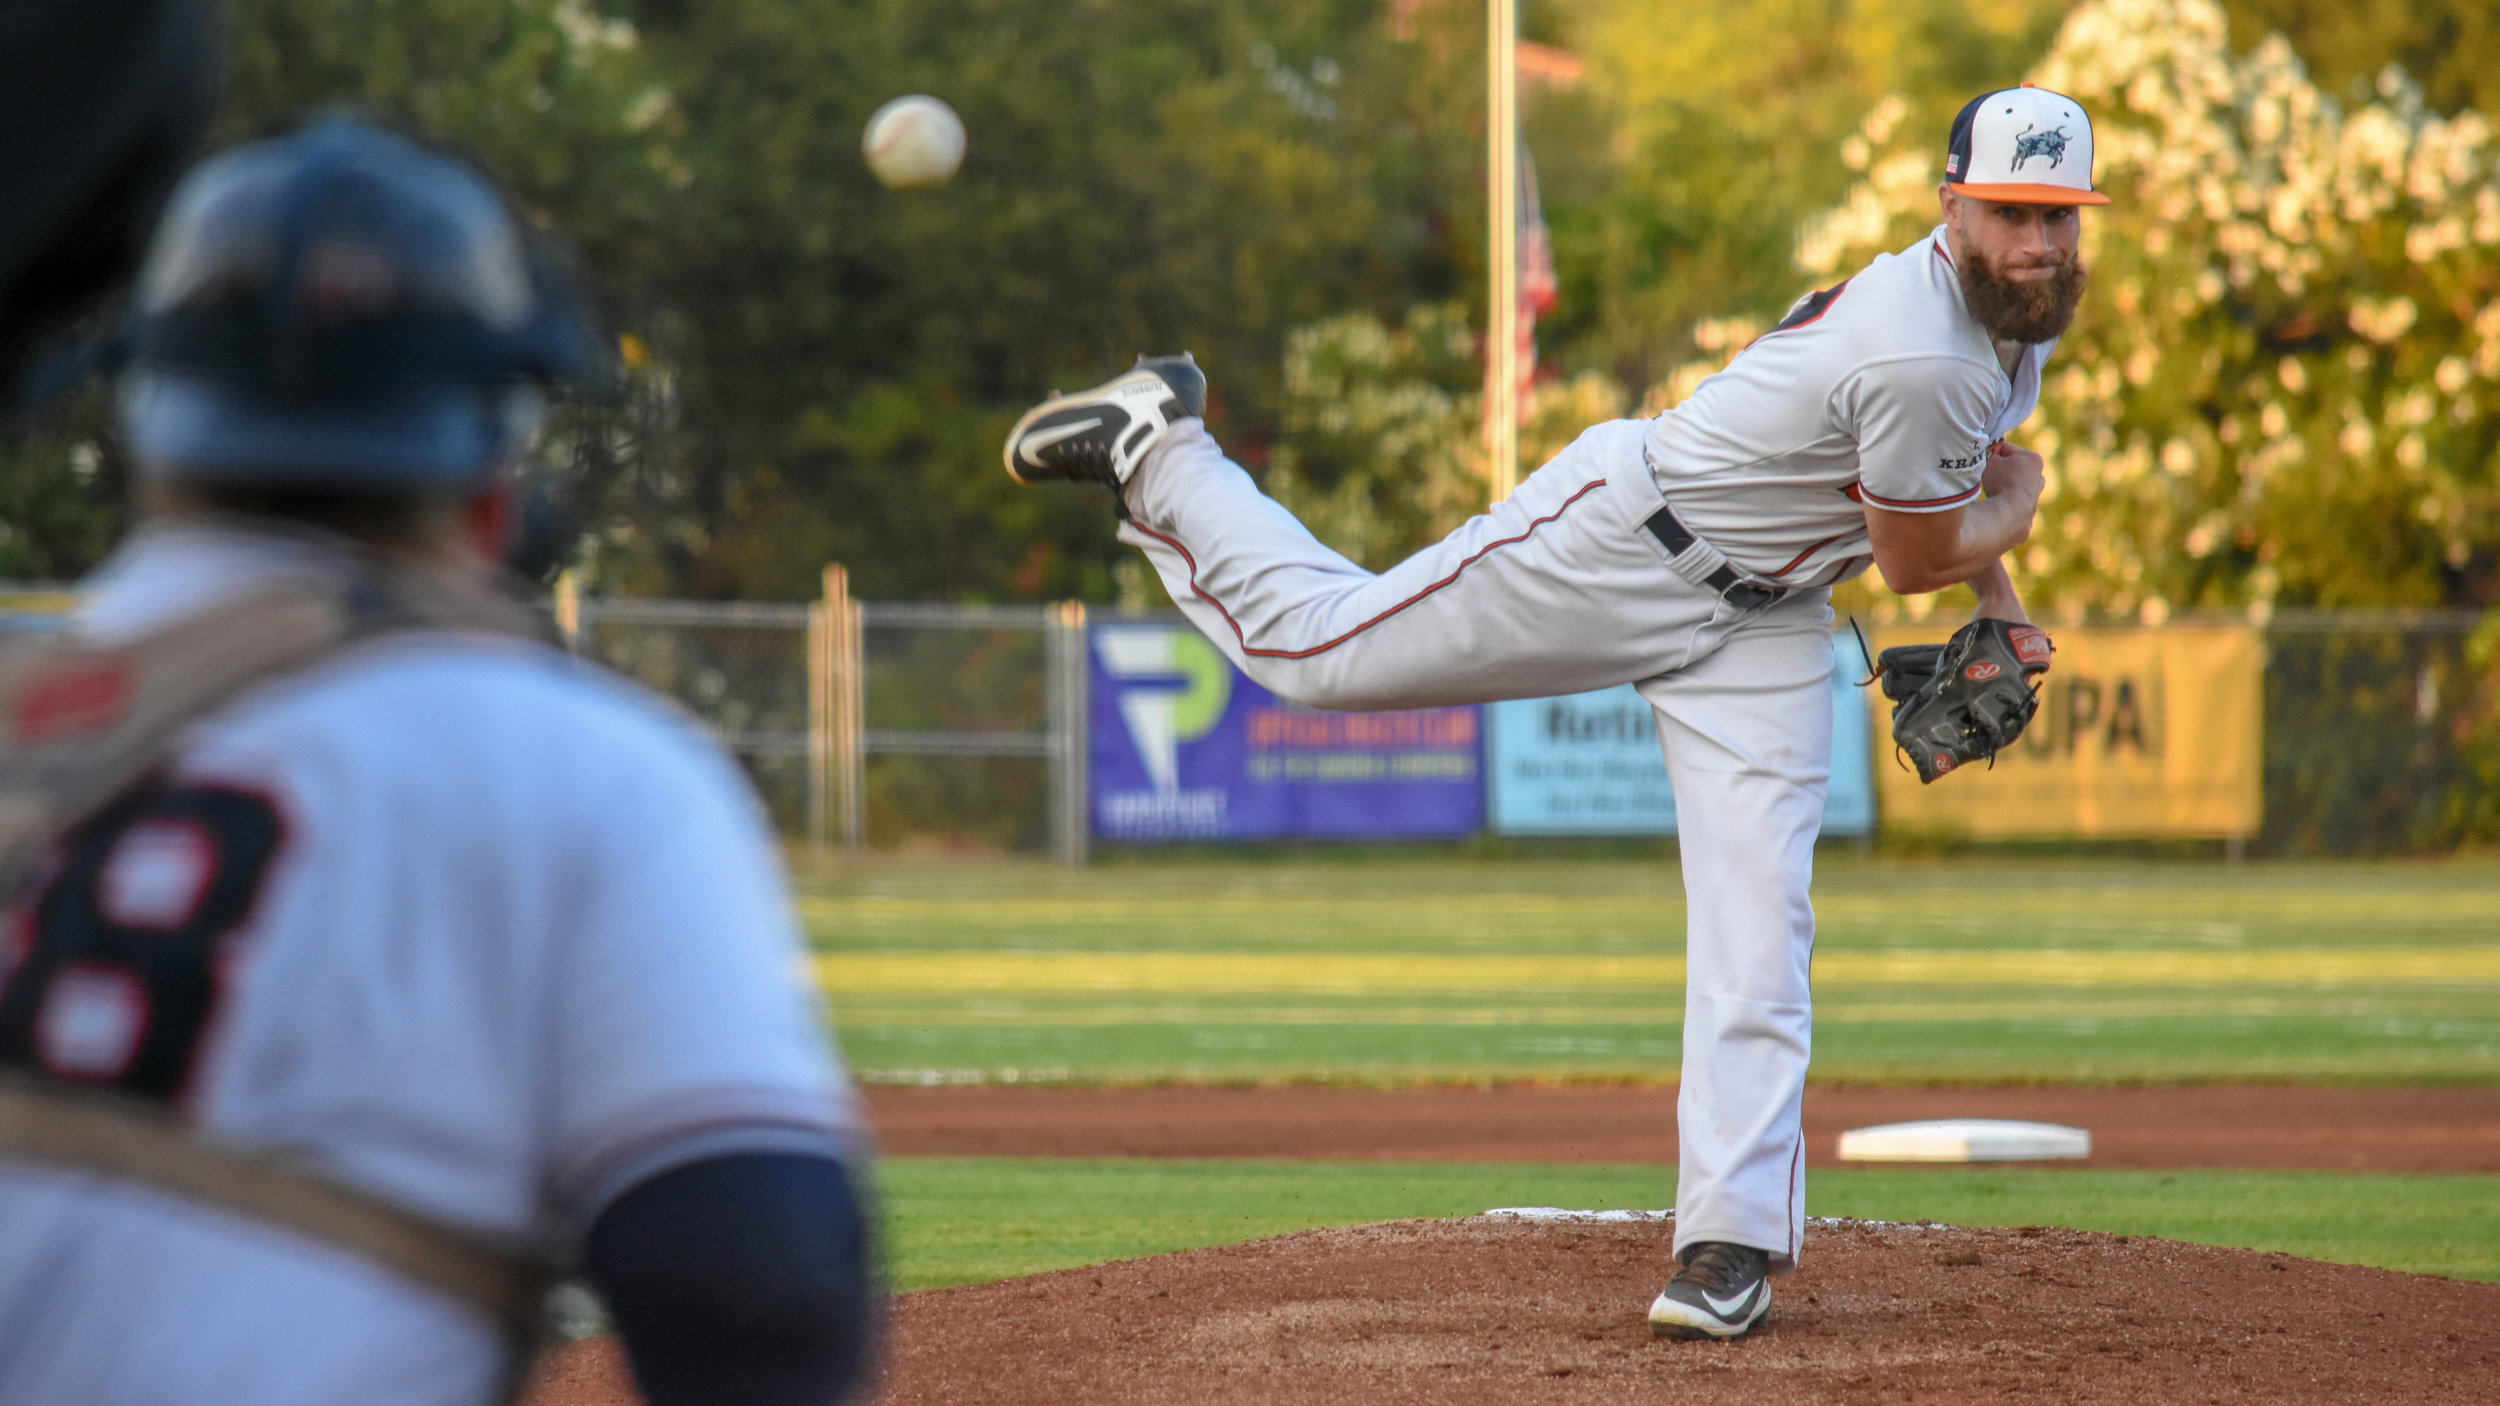 Ethan Gibbons throws a pitch in the Sonoma Stompers game against the Pittsburg Diamonds, September 1, 2018 in Sonoma, Calif.(James W. Toy III / Sonoma Stompers)